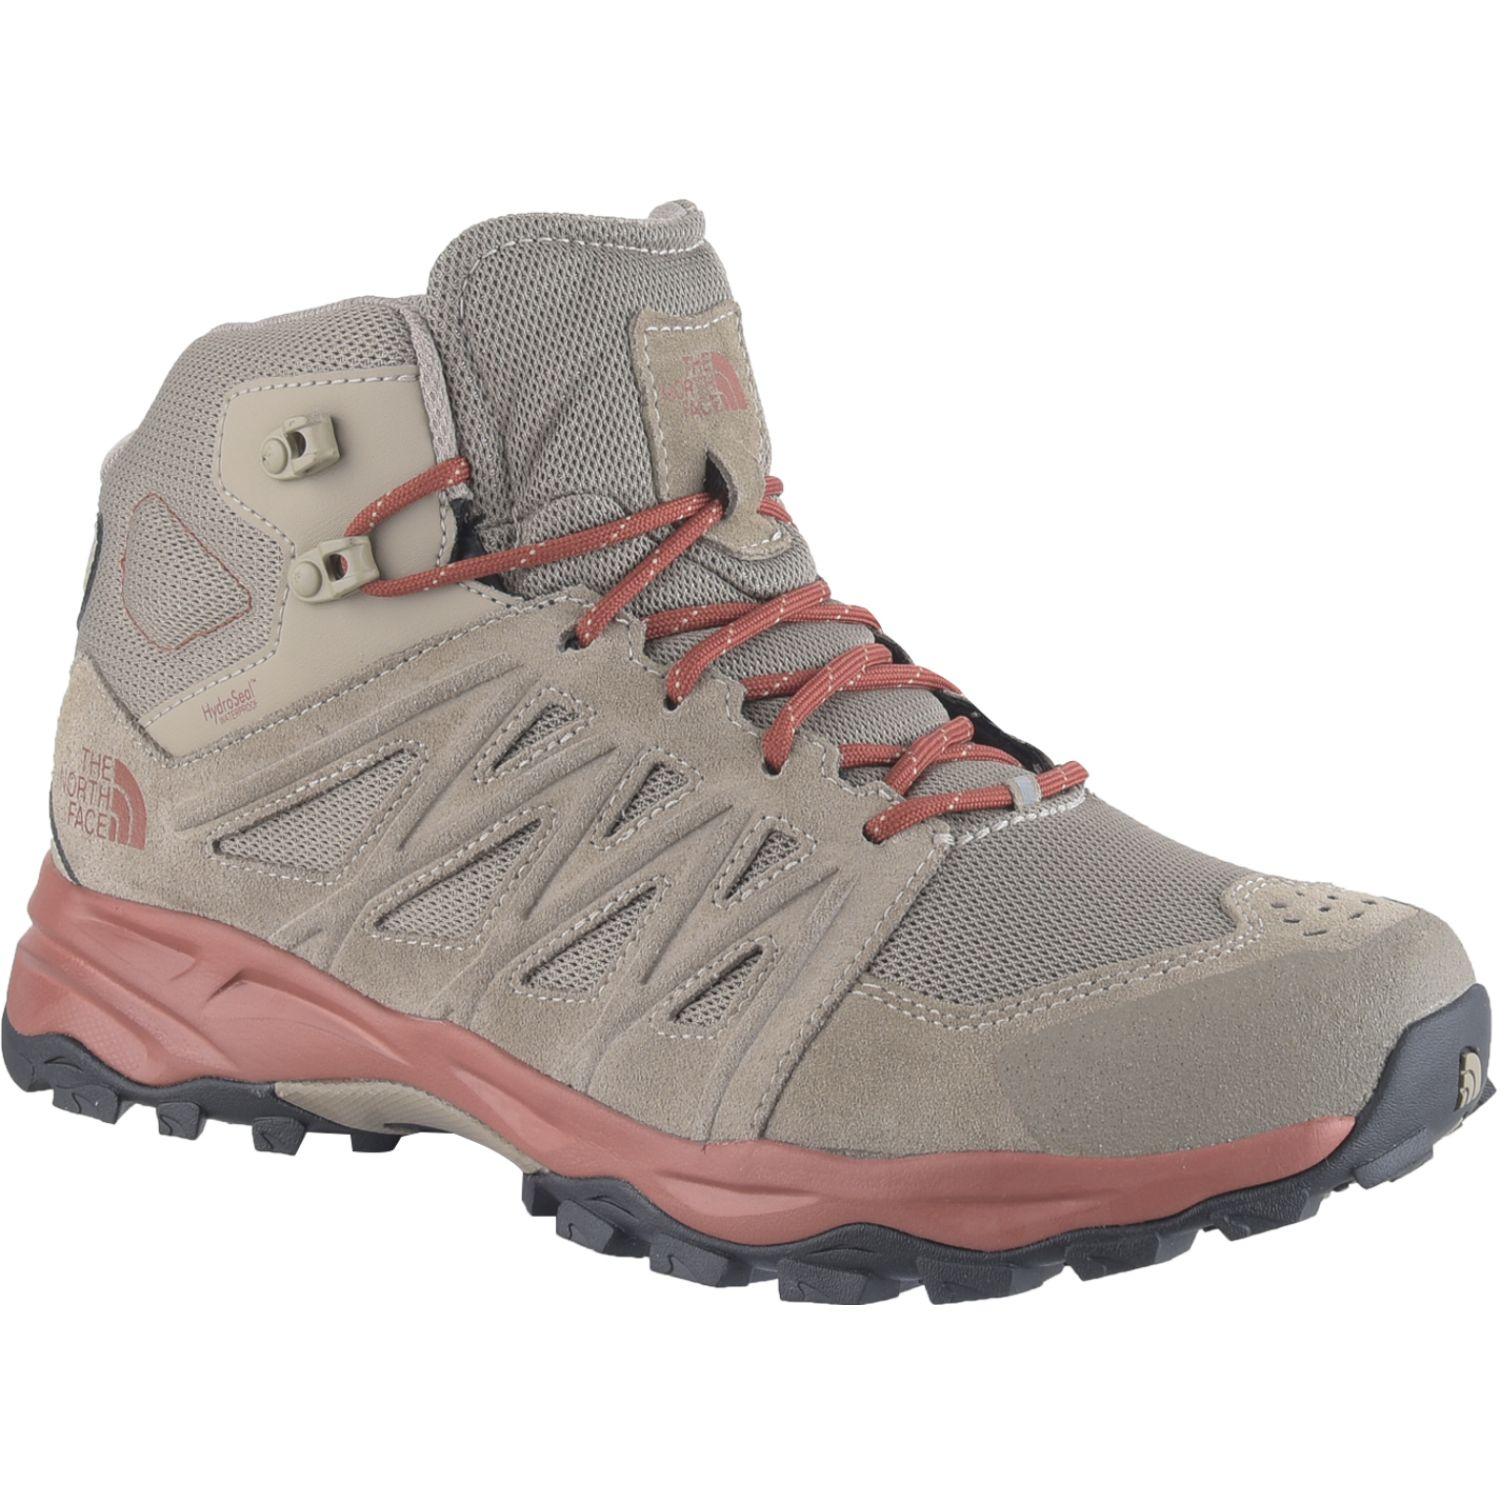 The North Face M TRUCKEE MID WP Marron Calzado hiking